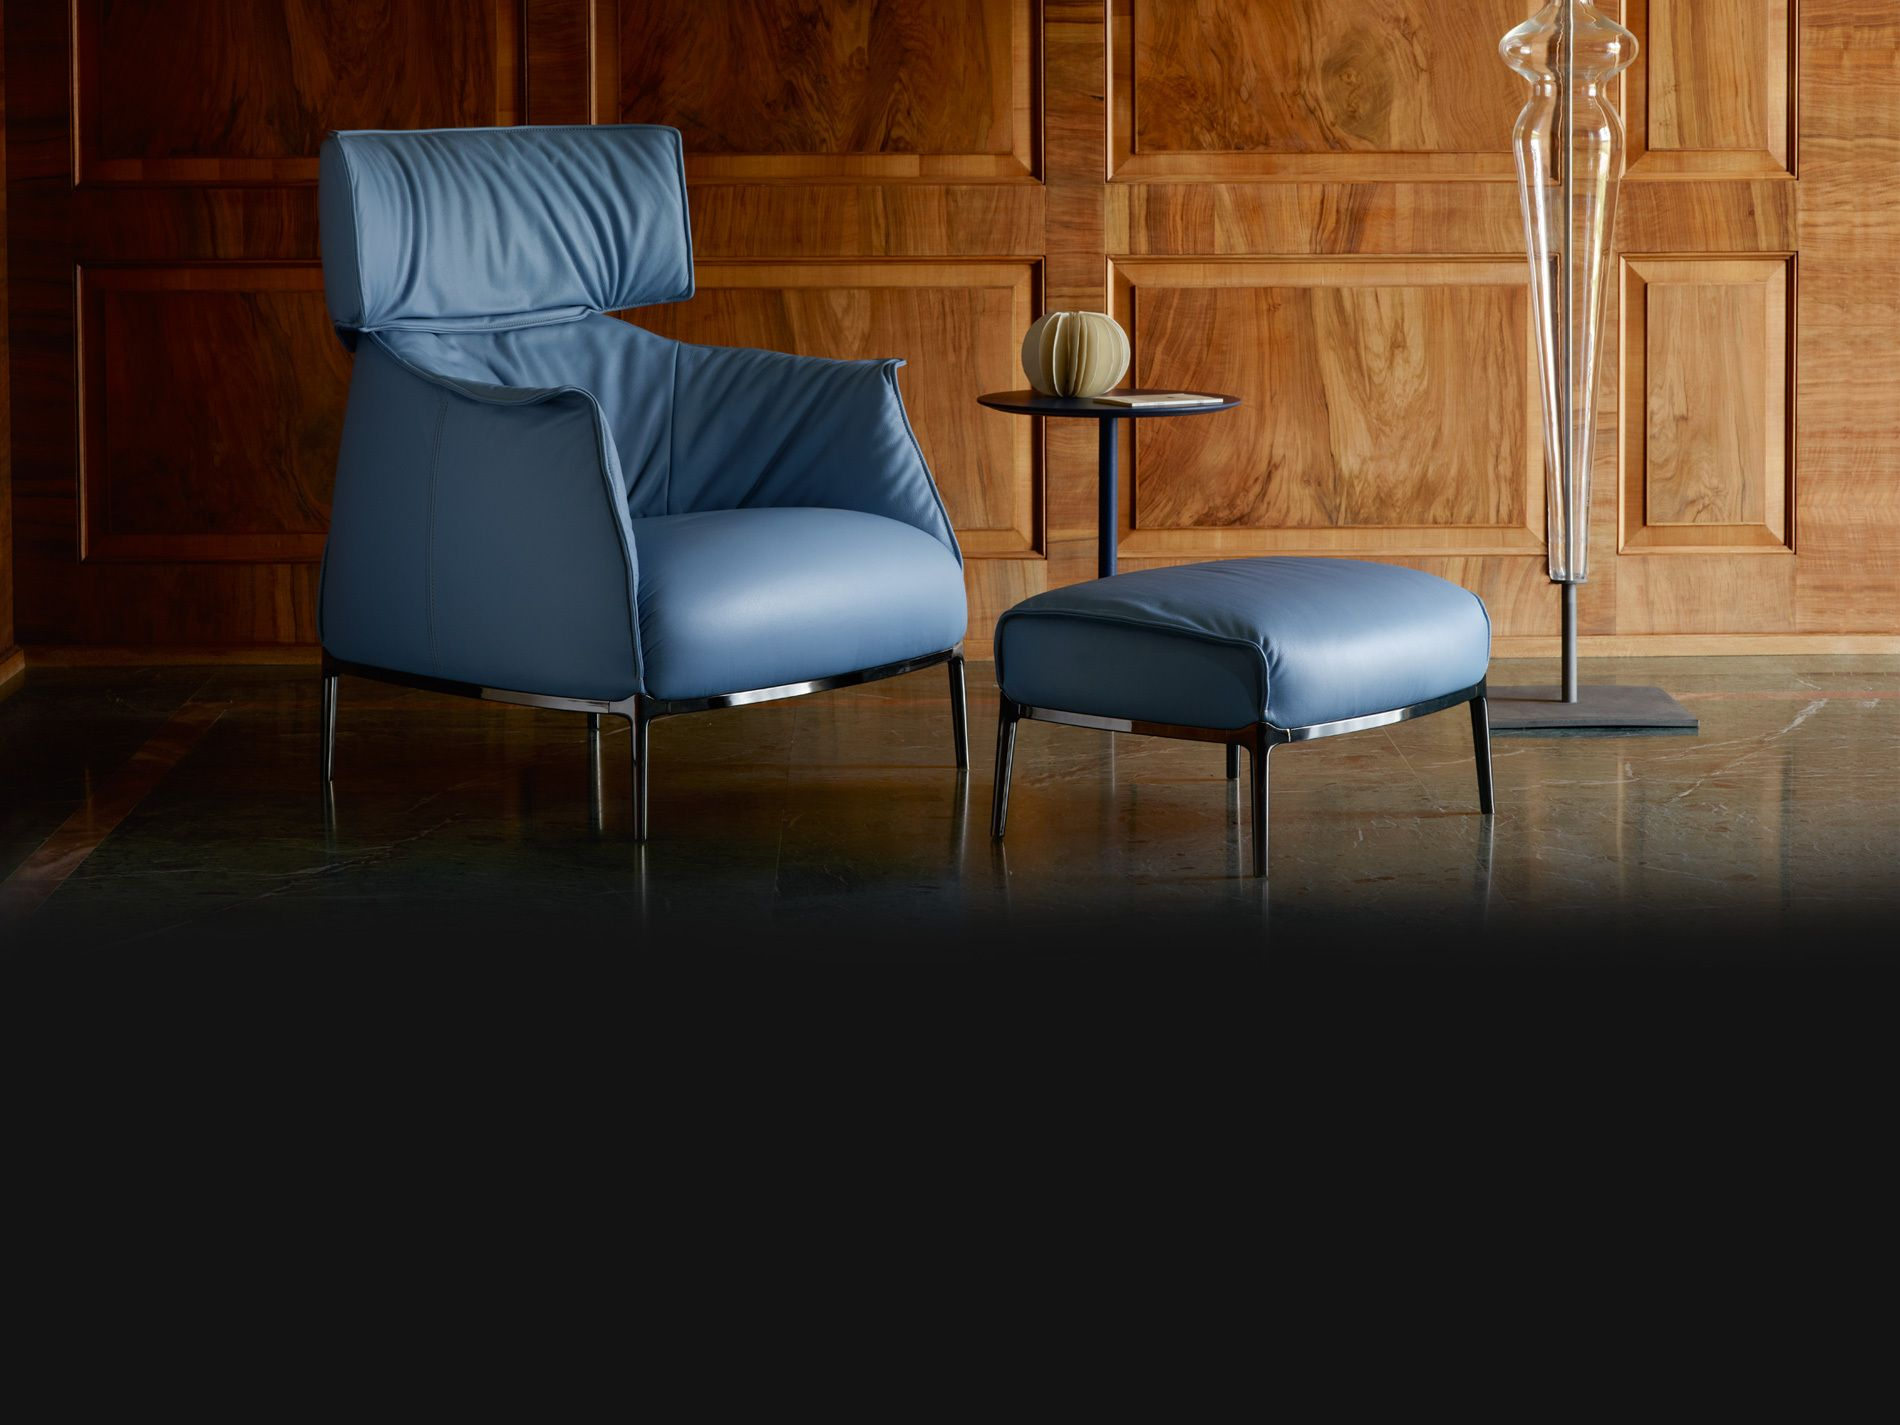 Poltrona Frau Quality From Le Marche With Images Furniture Design Archibald Lounge Chair Zen Furniture